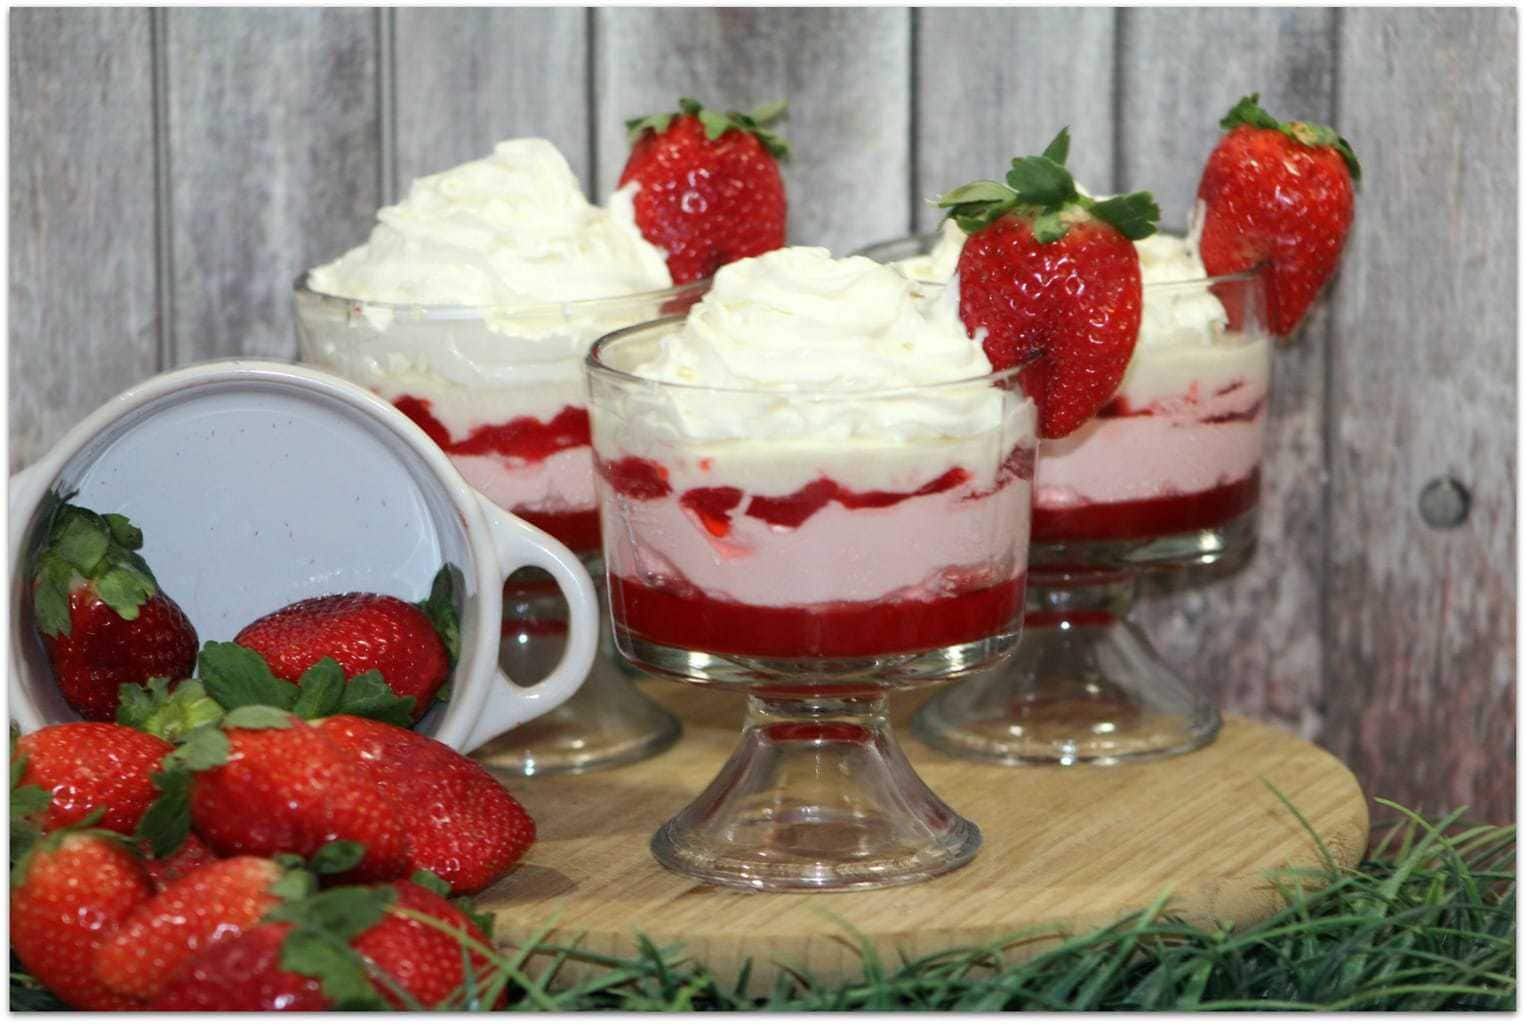 This Red Velvet Cookie and Strawberry Parfait will wow your friends and family, and it's an easy recipe! Don't go out and buy desserts when you can head to the kitchen and make this recipe yourself! This easy dessert is perfect for Valentine's Day or any day you want to make something special.